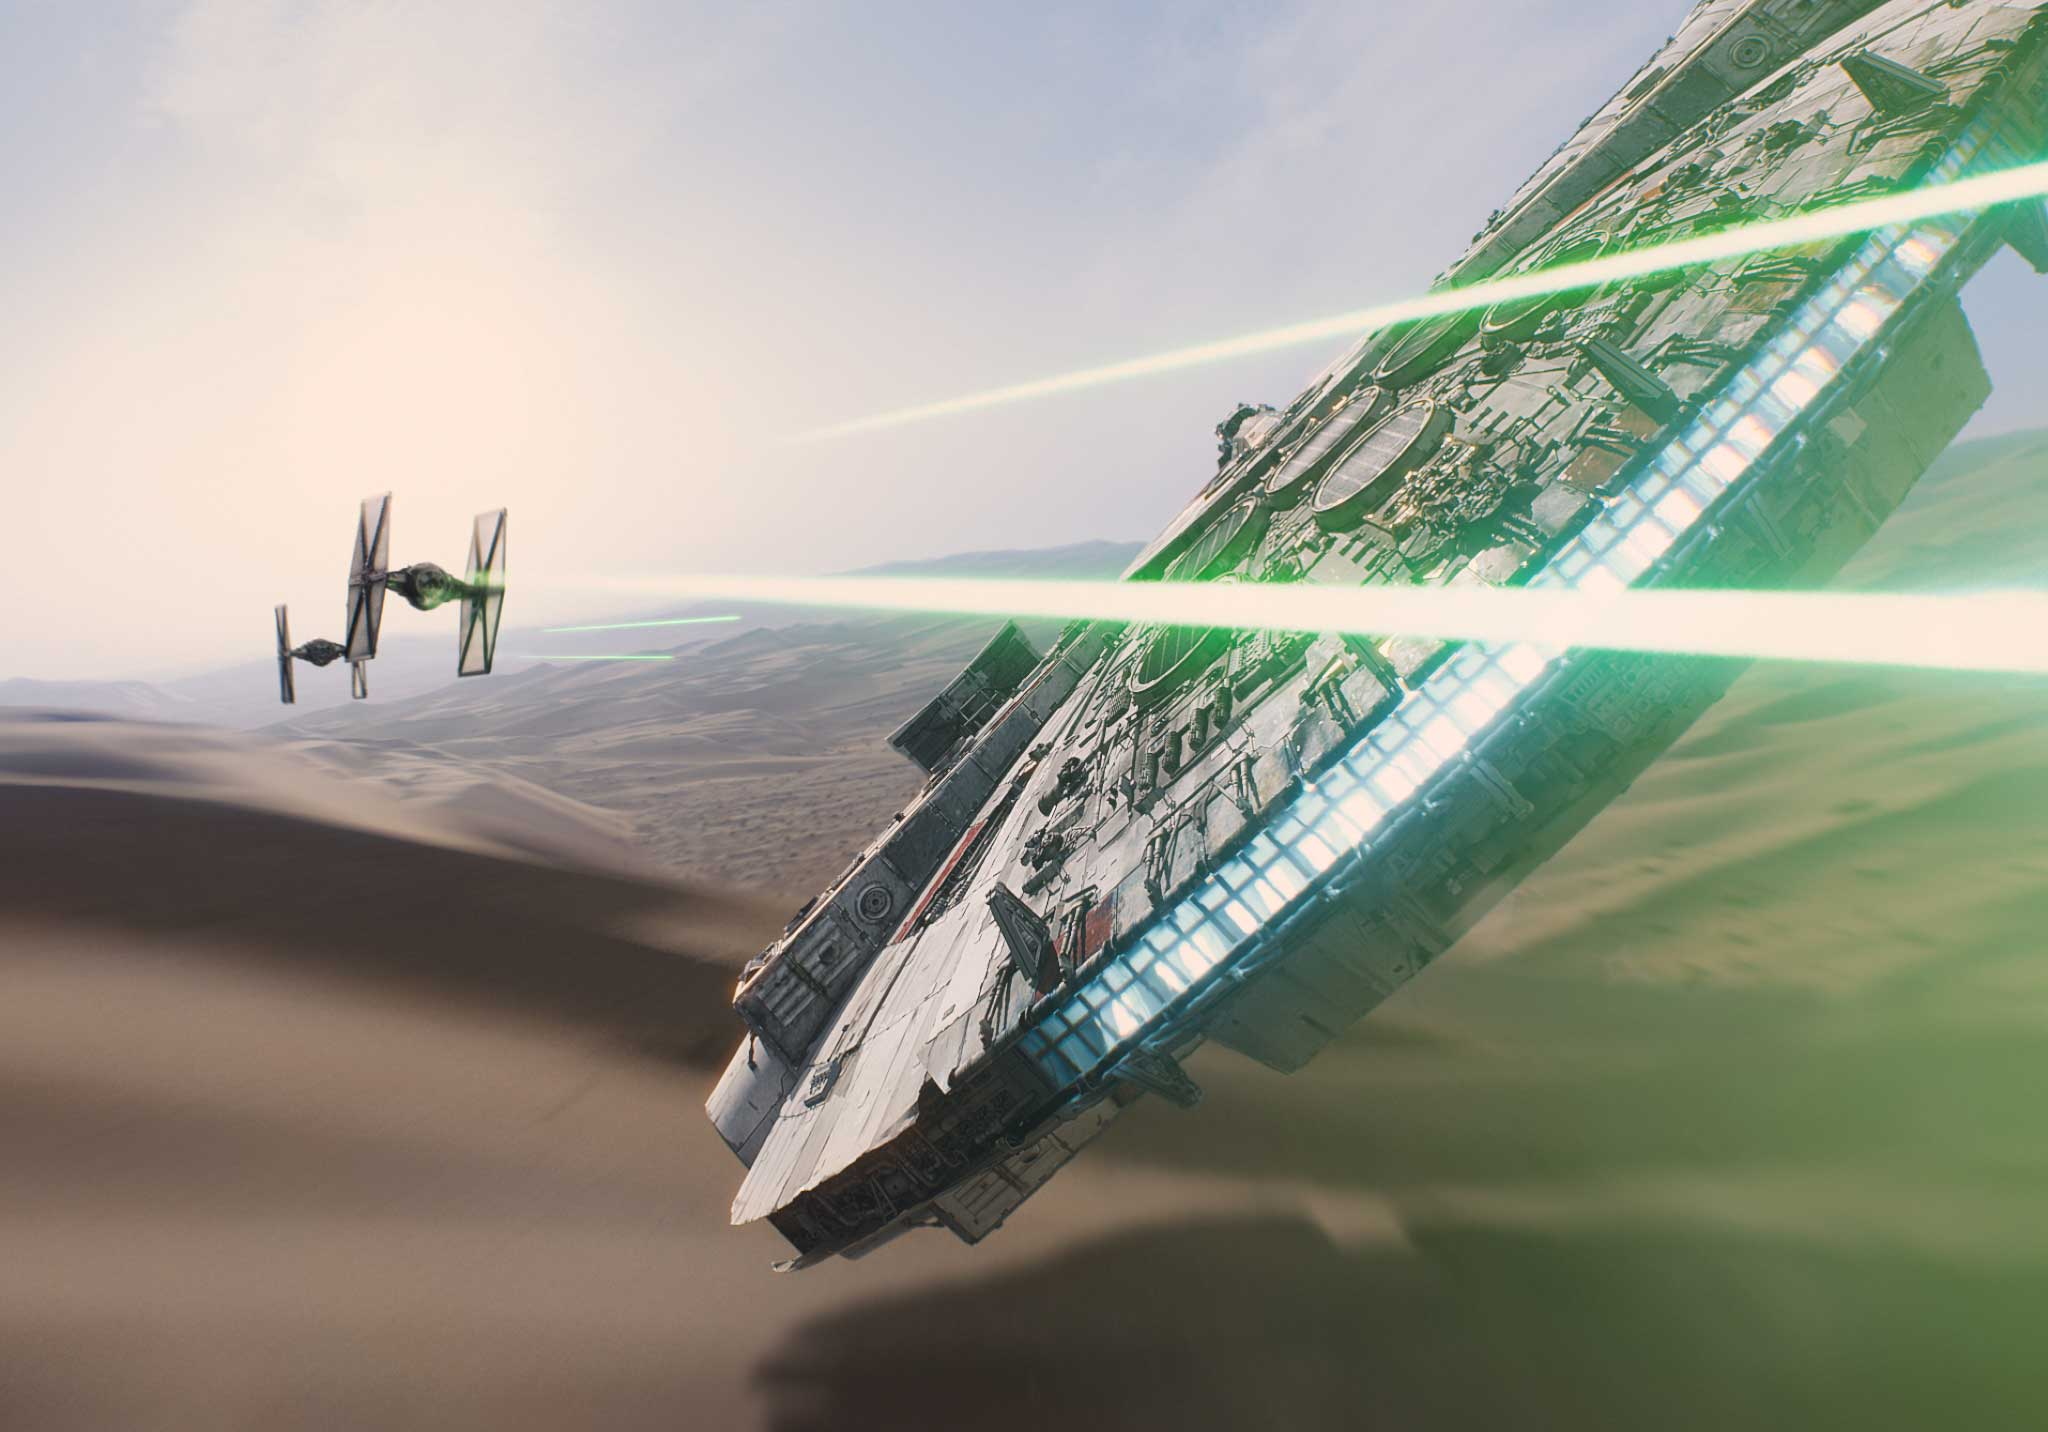 In this image released by Disney, a scene is shown from the upcoming film,  Star Wars: The Force Awakens,  expected in theaters on Dec. 18, 2015.